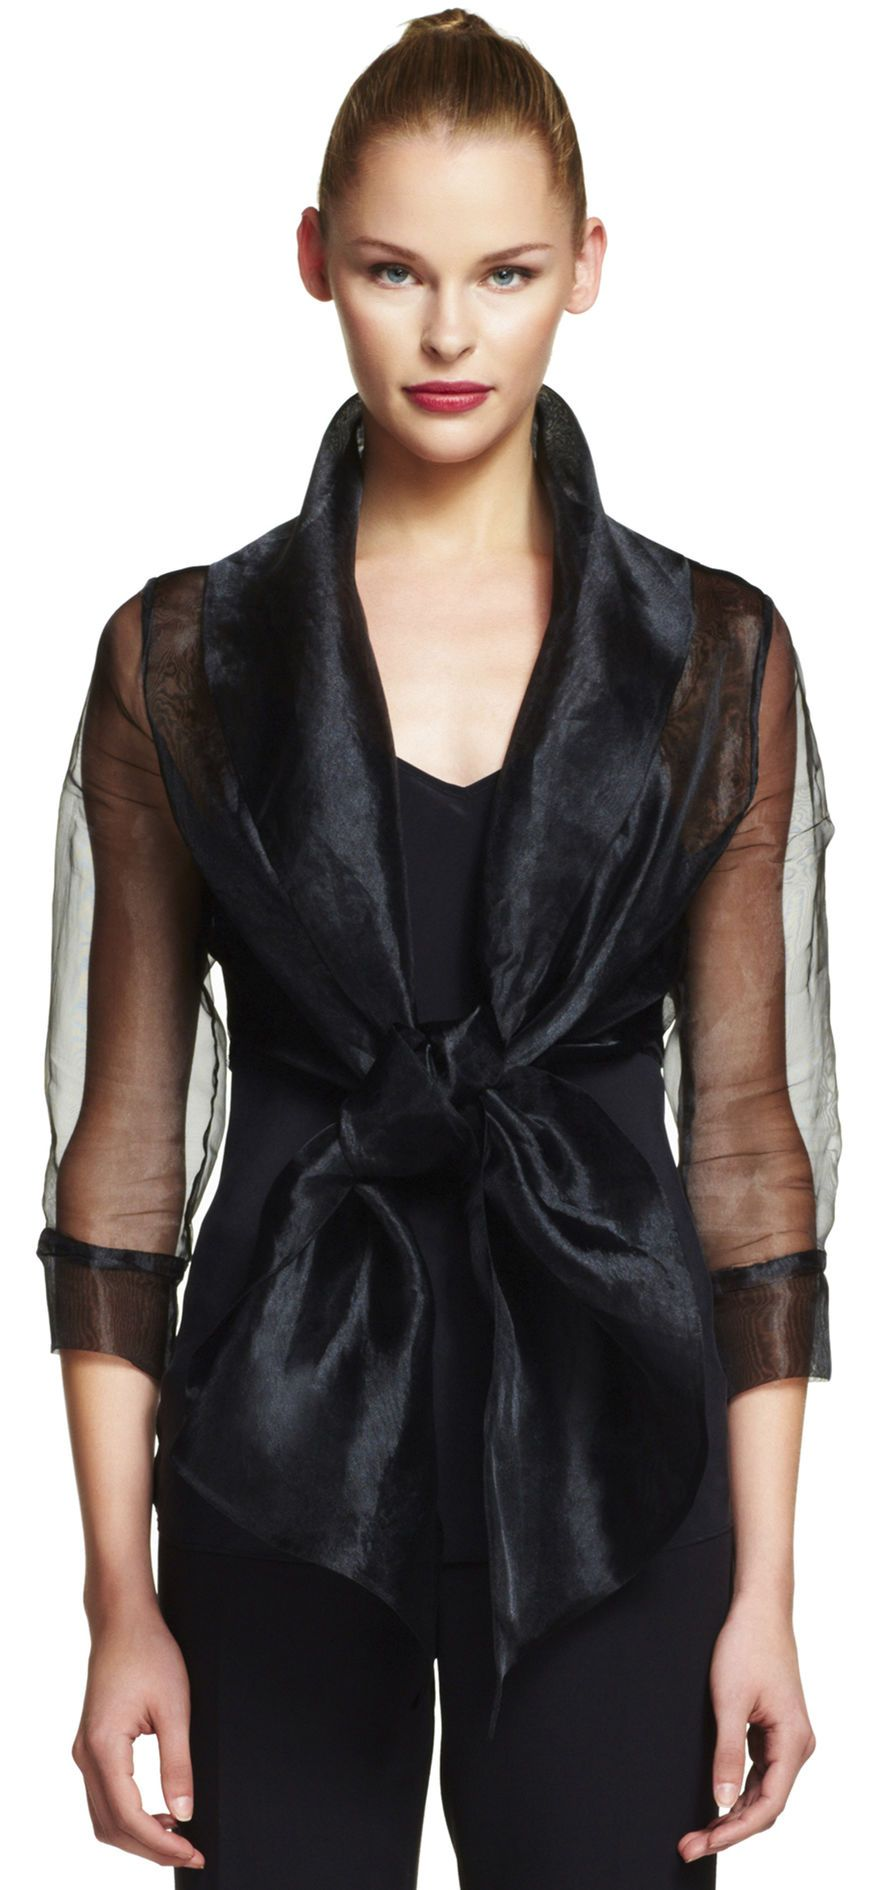 cdb58d5c499 Organza wrap jacket with tie front collar - Adrianna Papell